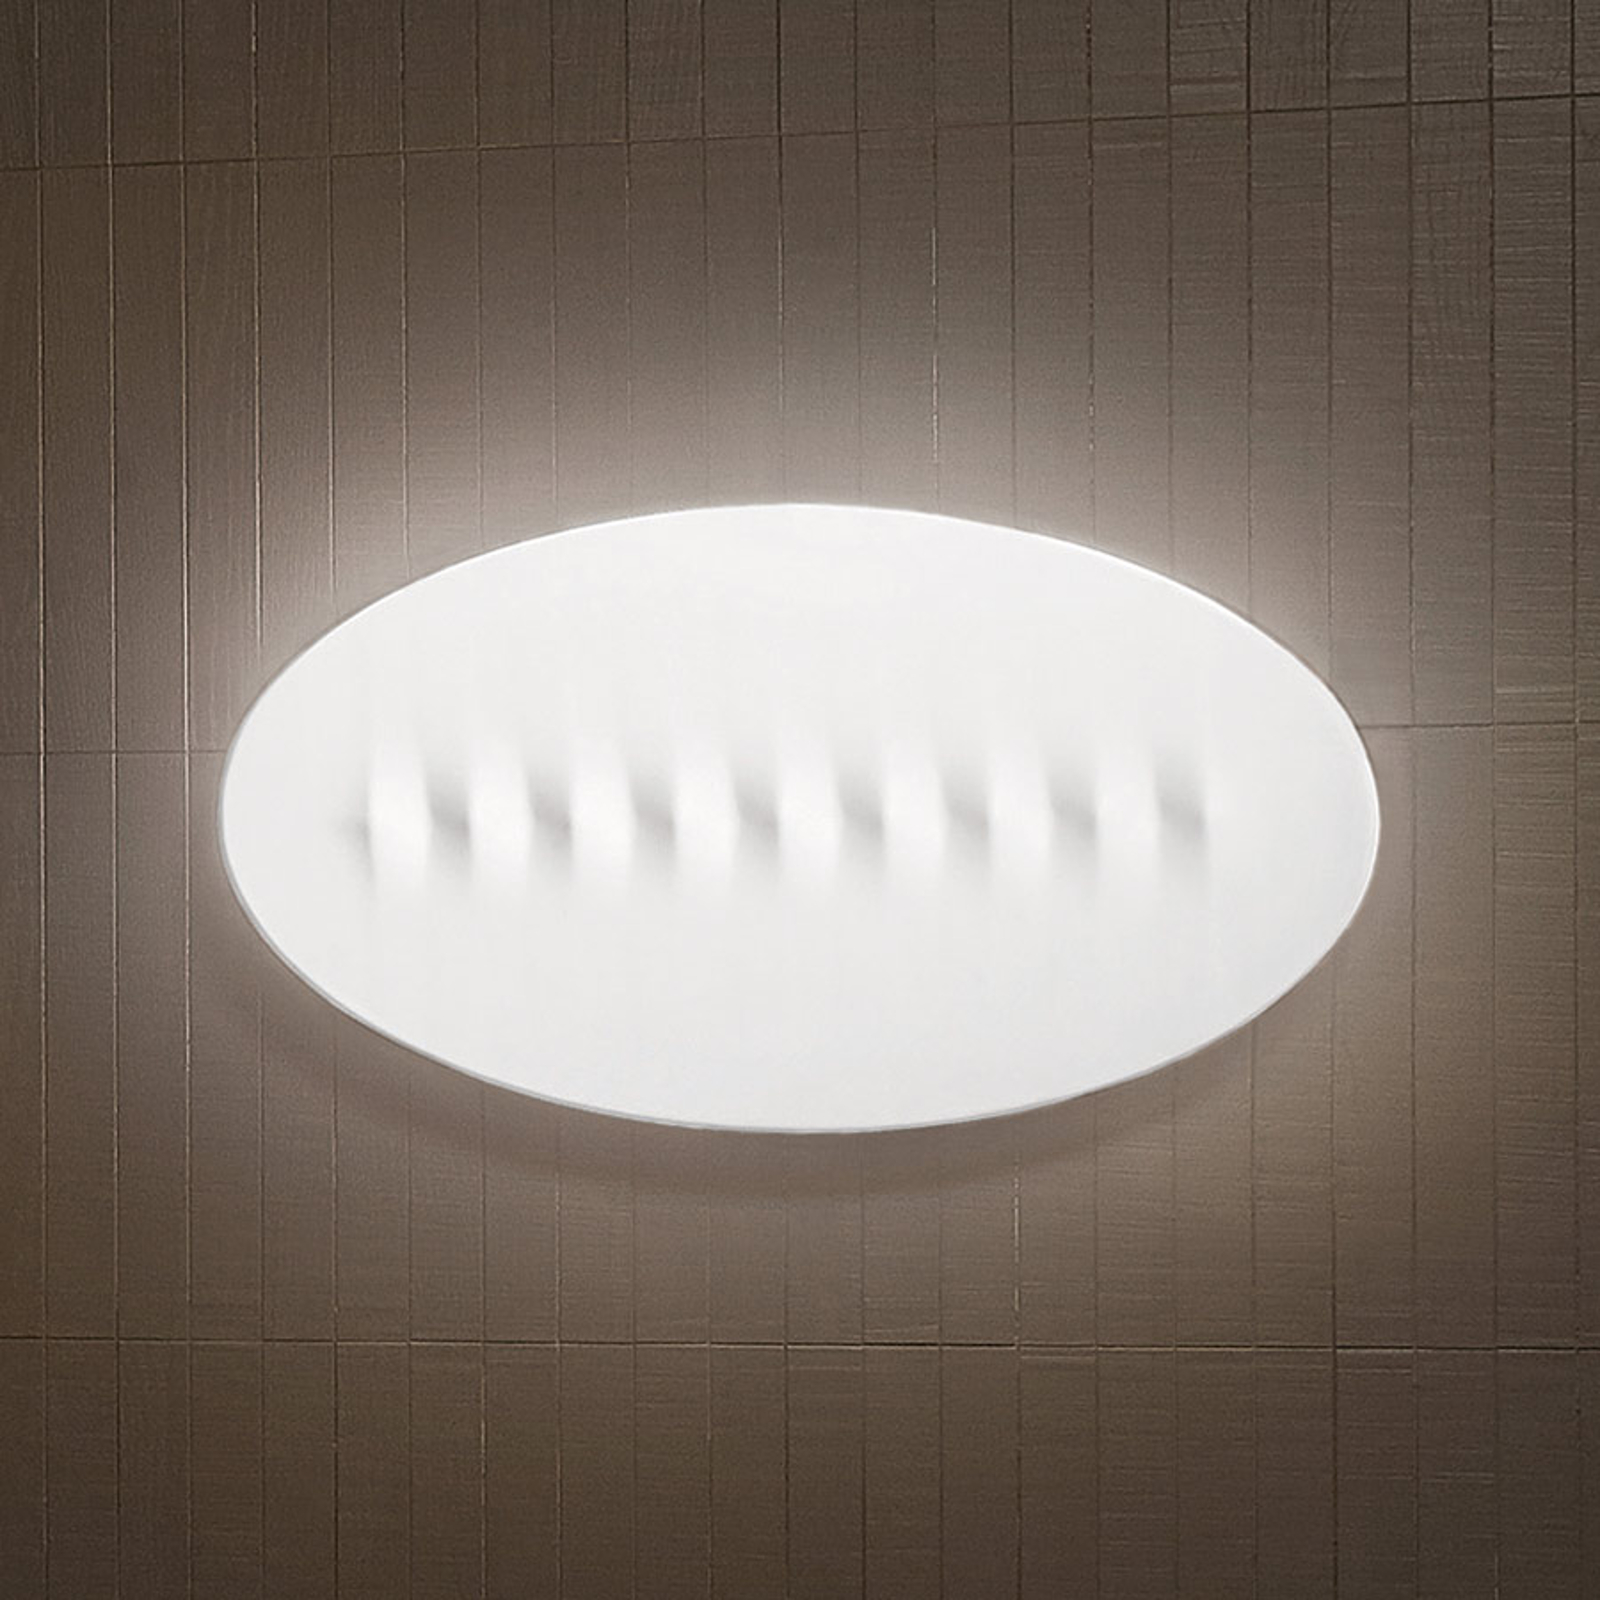 Foscarini MyLight Superficie applique LED, 75cm